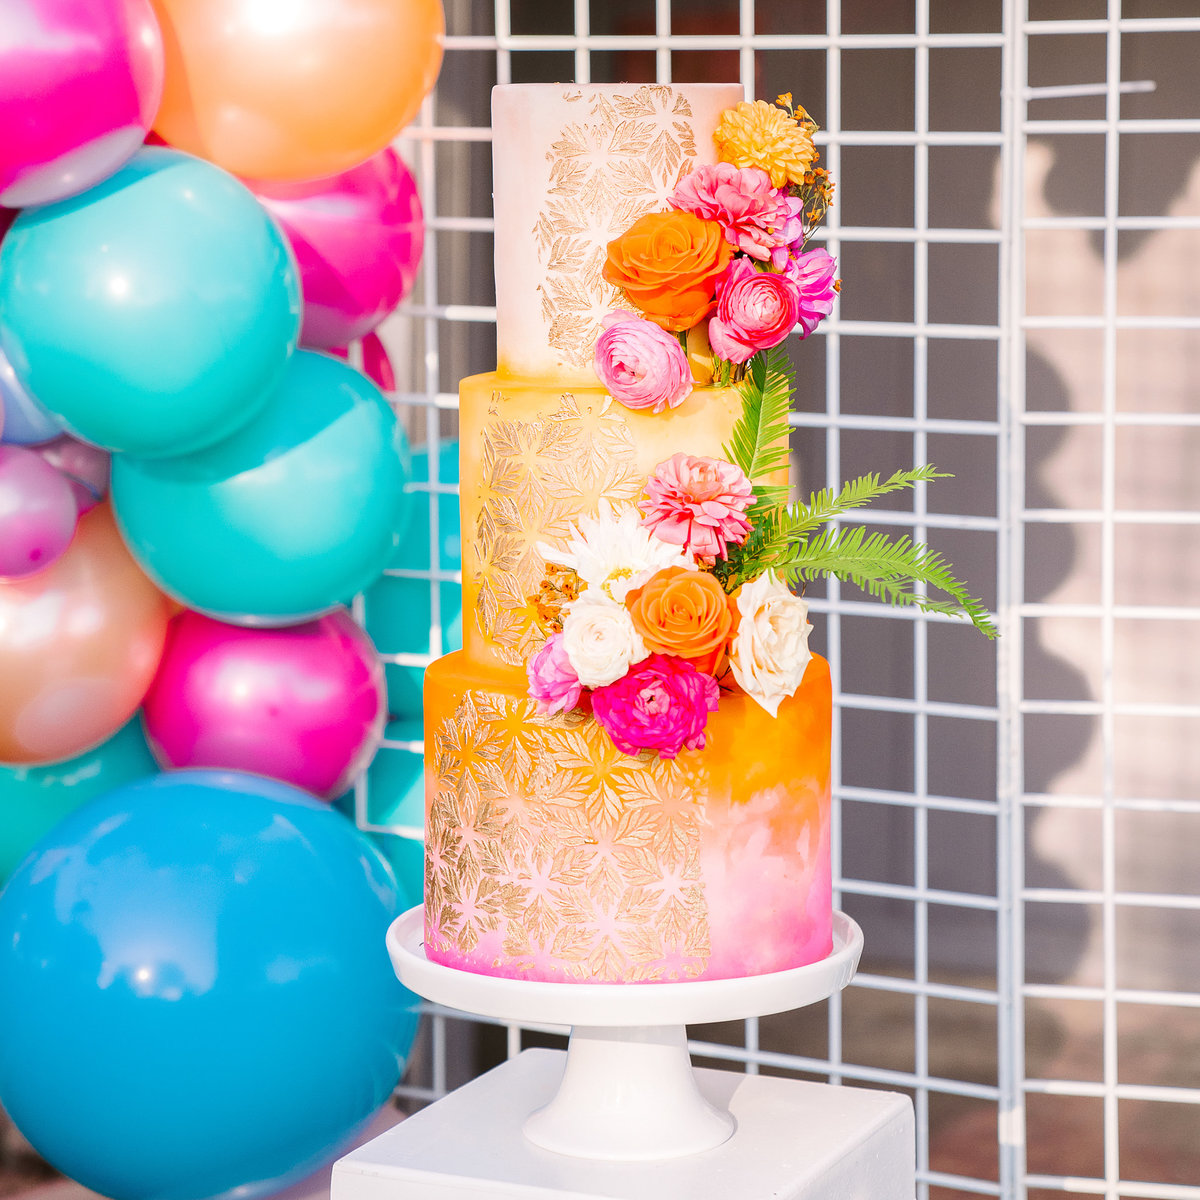 kalamazoo-tropical-wedding-cake